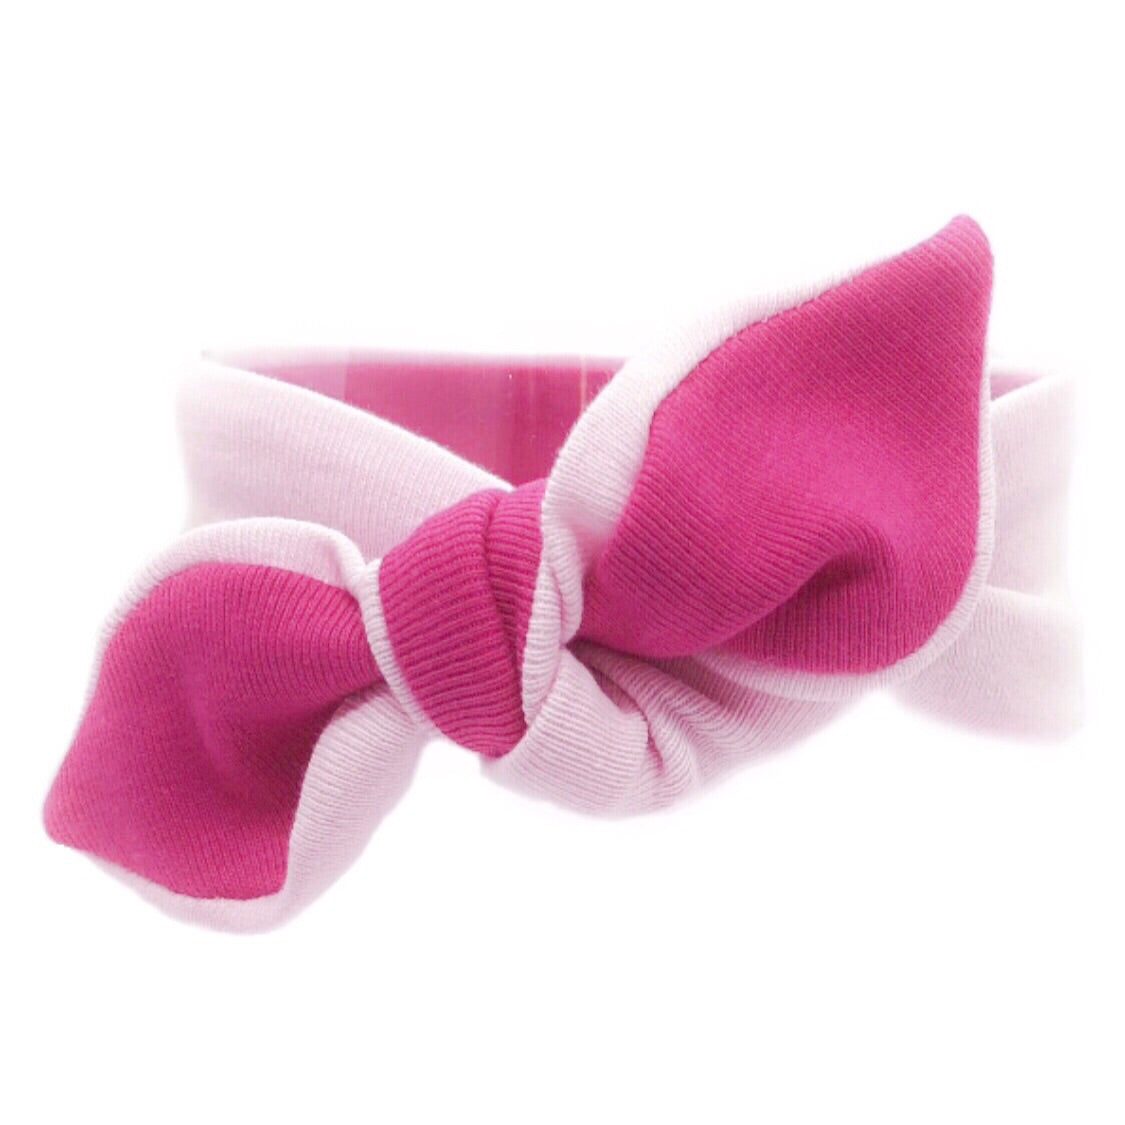 Baby & Toddler Knotted Hair Band/Bow - Pink